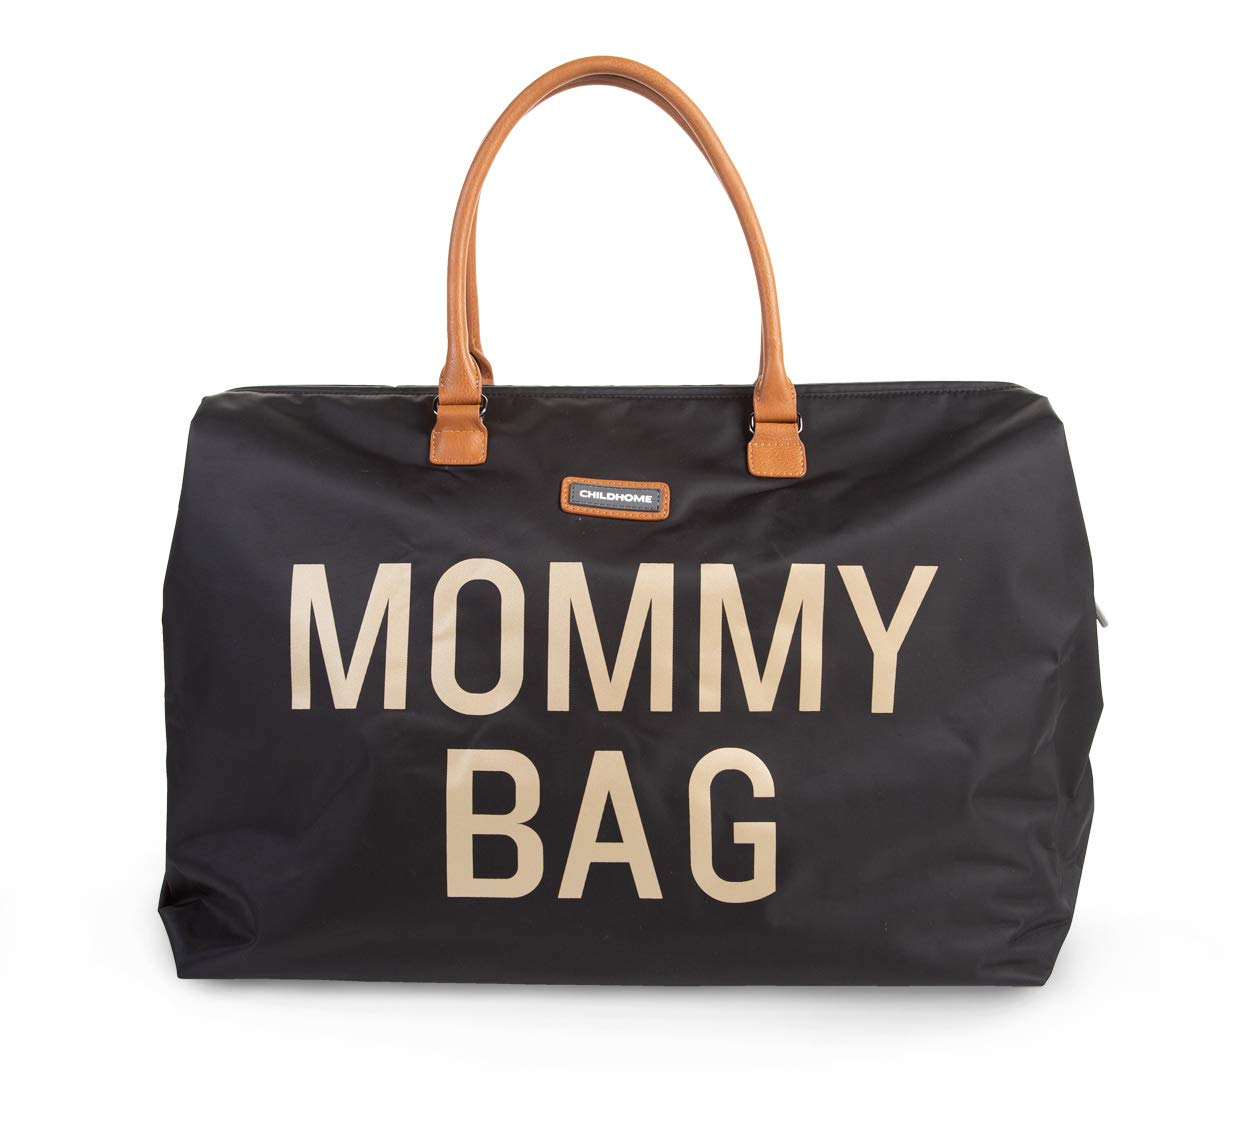 CHILDHOME Mommy Bag Big - Functional Large Baby Diaper Travel Bag for Baby Care. (Black Gold)